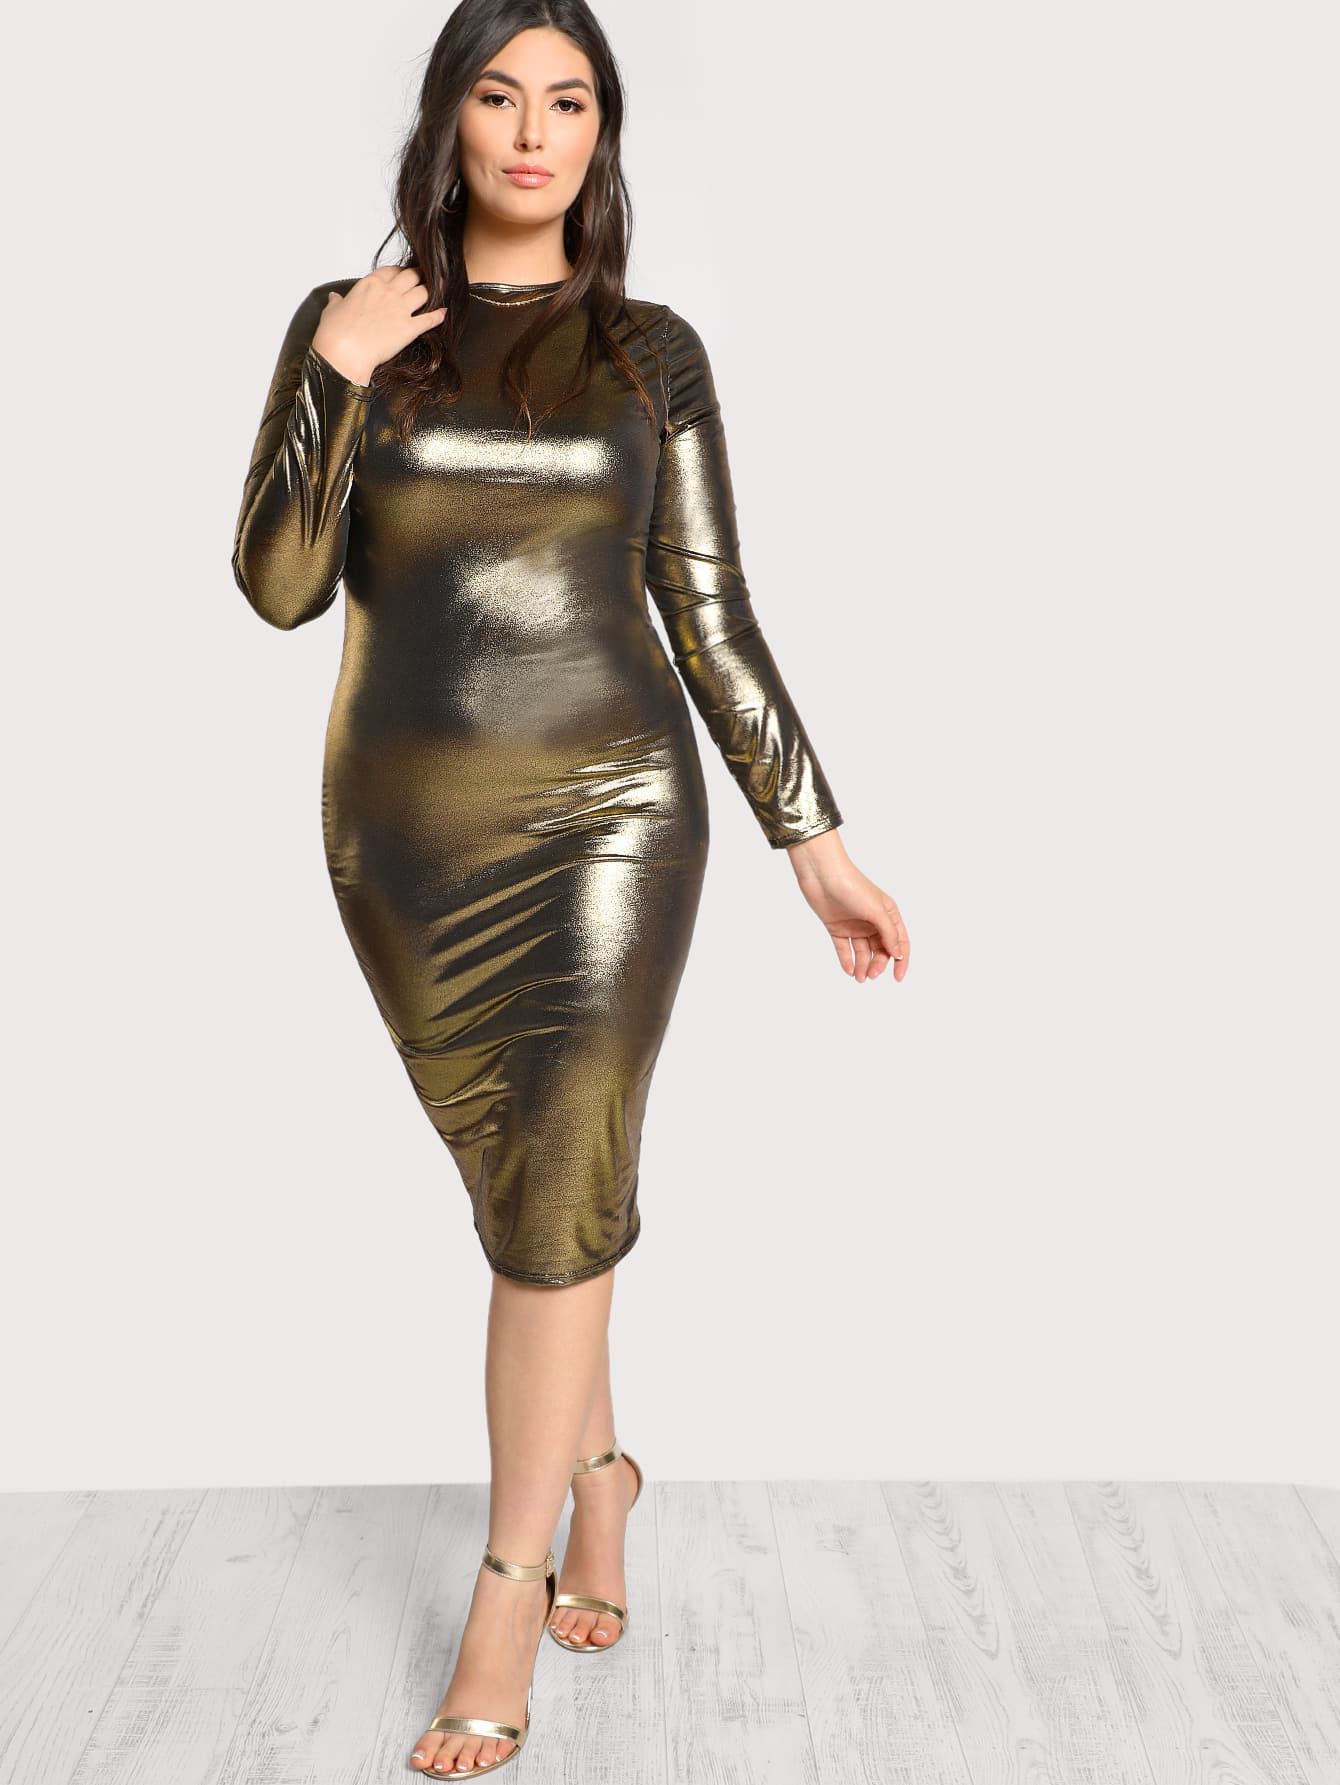 Metallic Form Fitting Dress the boy next door